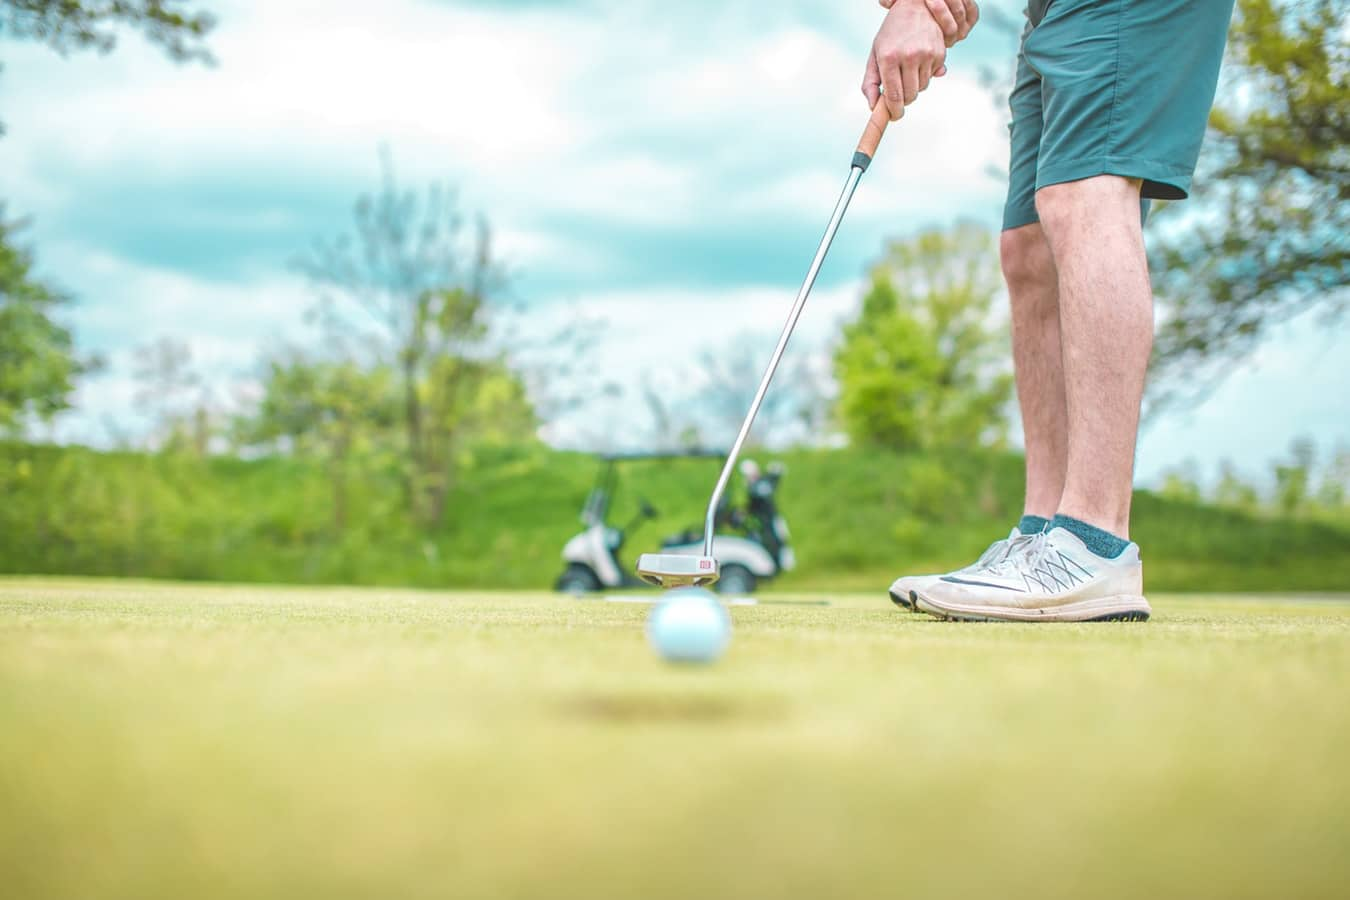 5 Hacks To Improve Your Golf Game